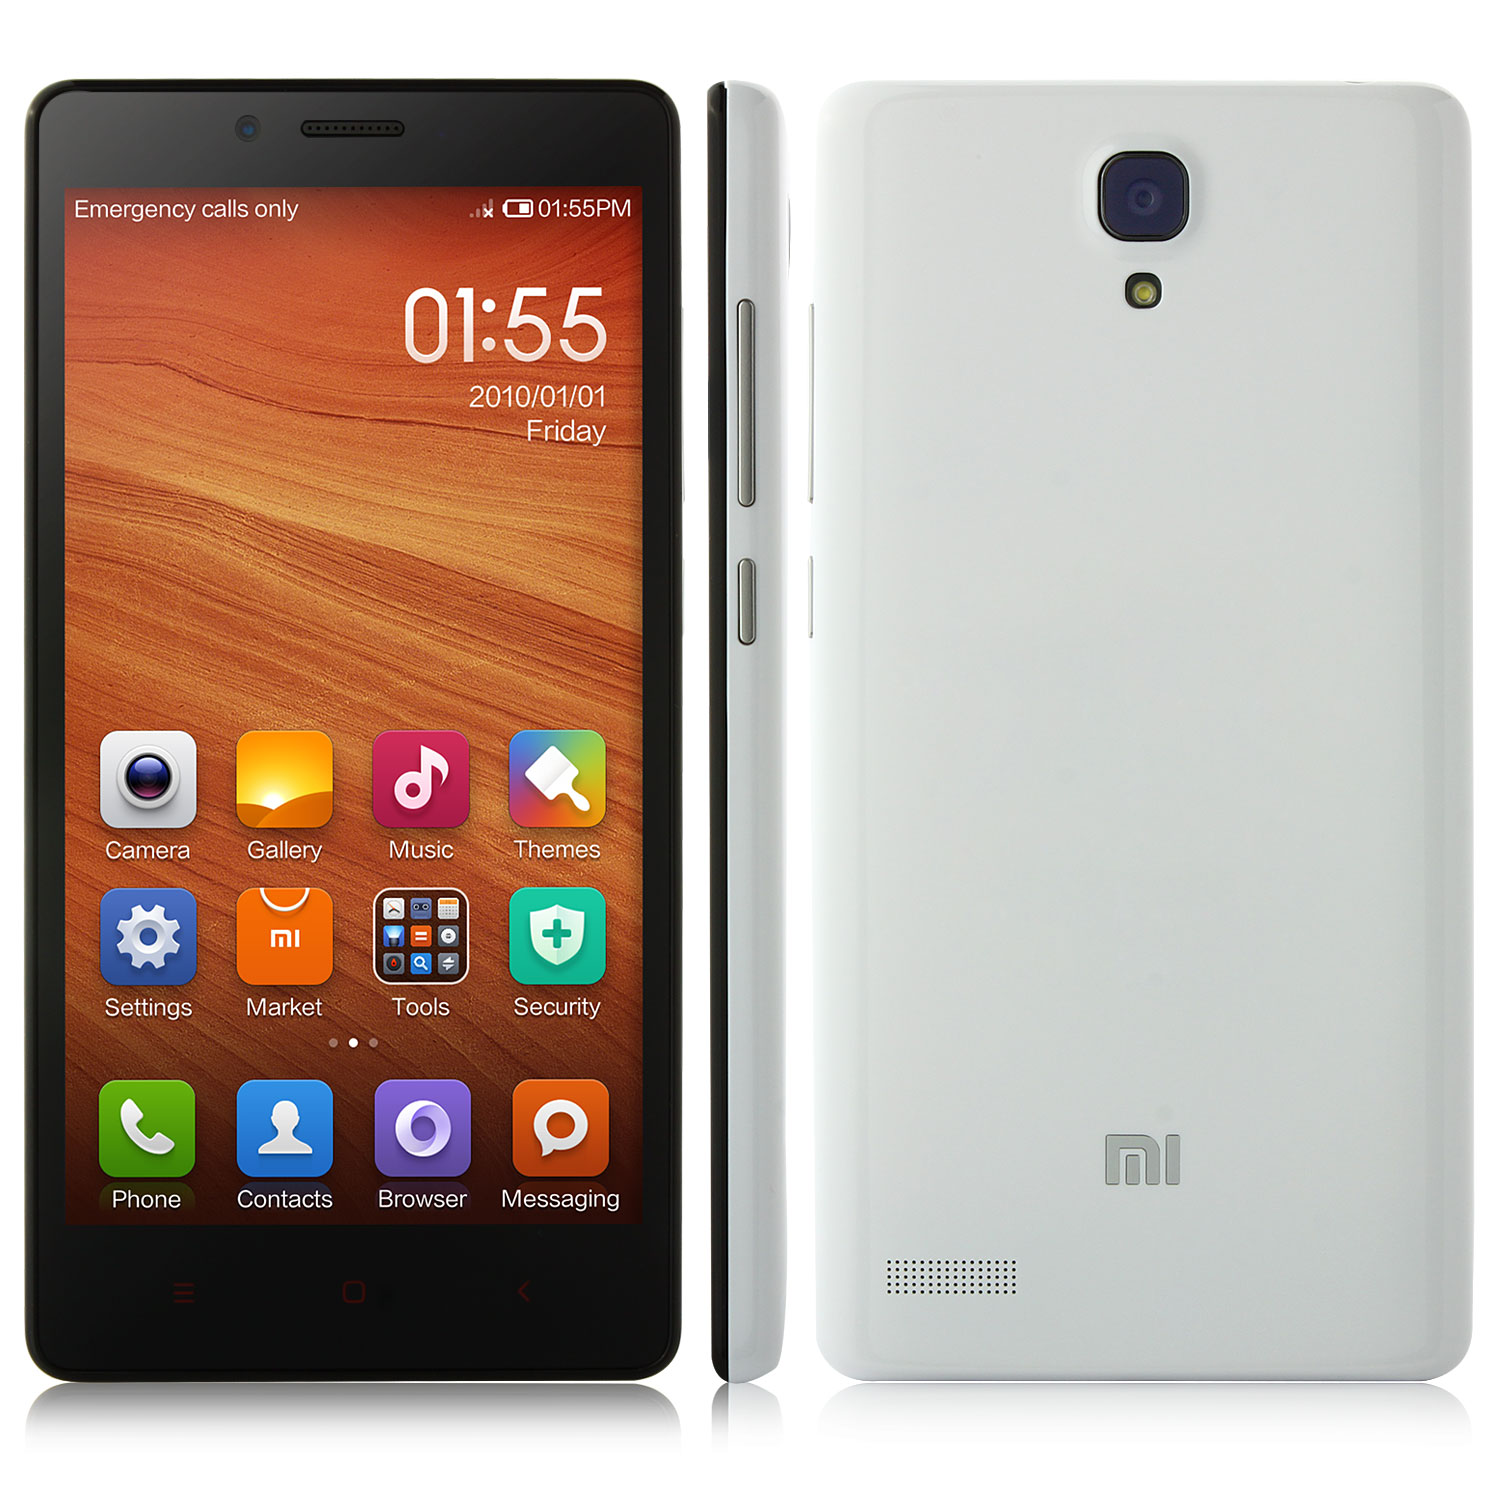 XIAOMI Redmi Note 4G LTE Snapdragon 400 1.6GHz 2GB 8GB 5.5 Inch HD IPS 13.0MP